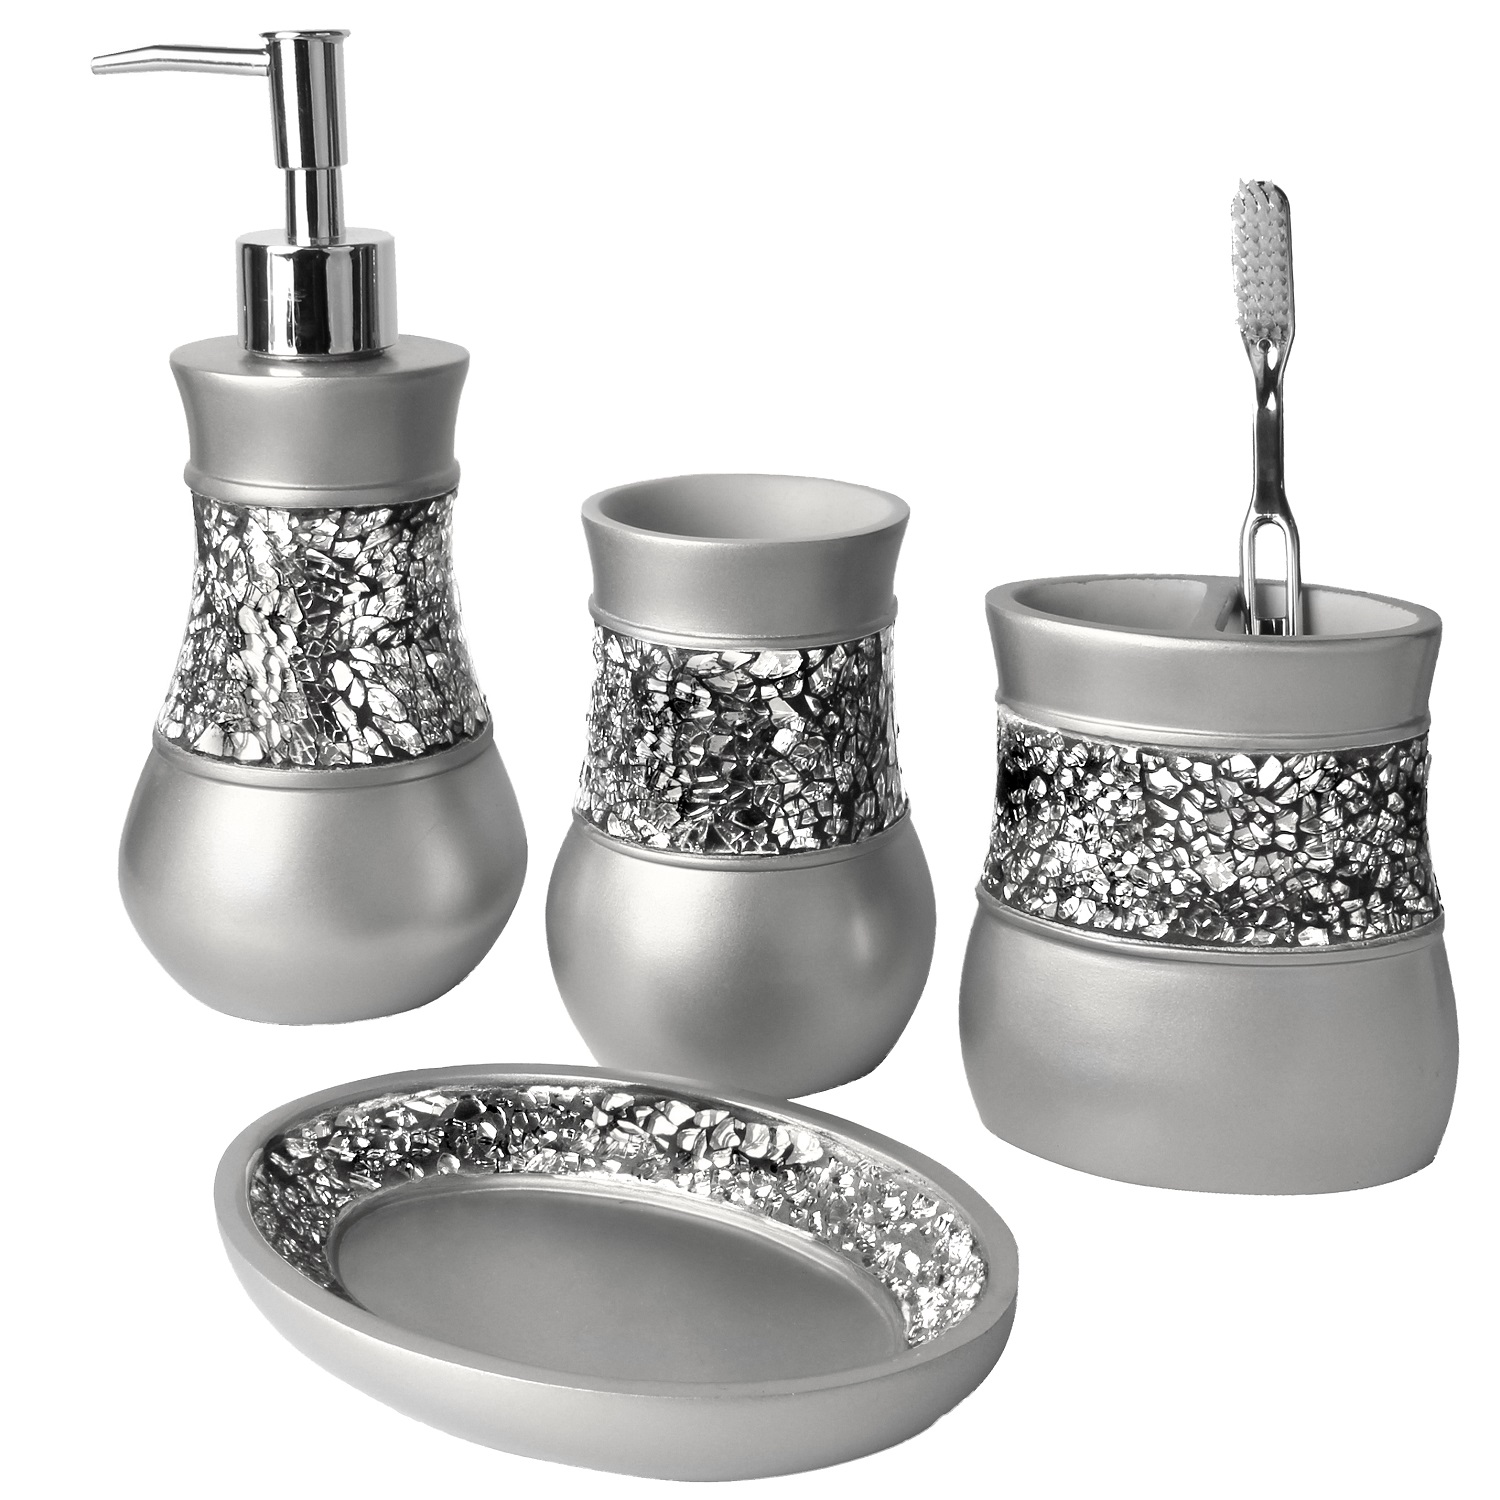 Brushed Nickel Bathroom Accessories Set, 4 Piece Bath Ensemble, Bath Set Collection Features Soap Dispenser Pump, Toothbrush Holder, Tumbler, Soap Dish- Gray - Silver Mosaic Glass